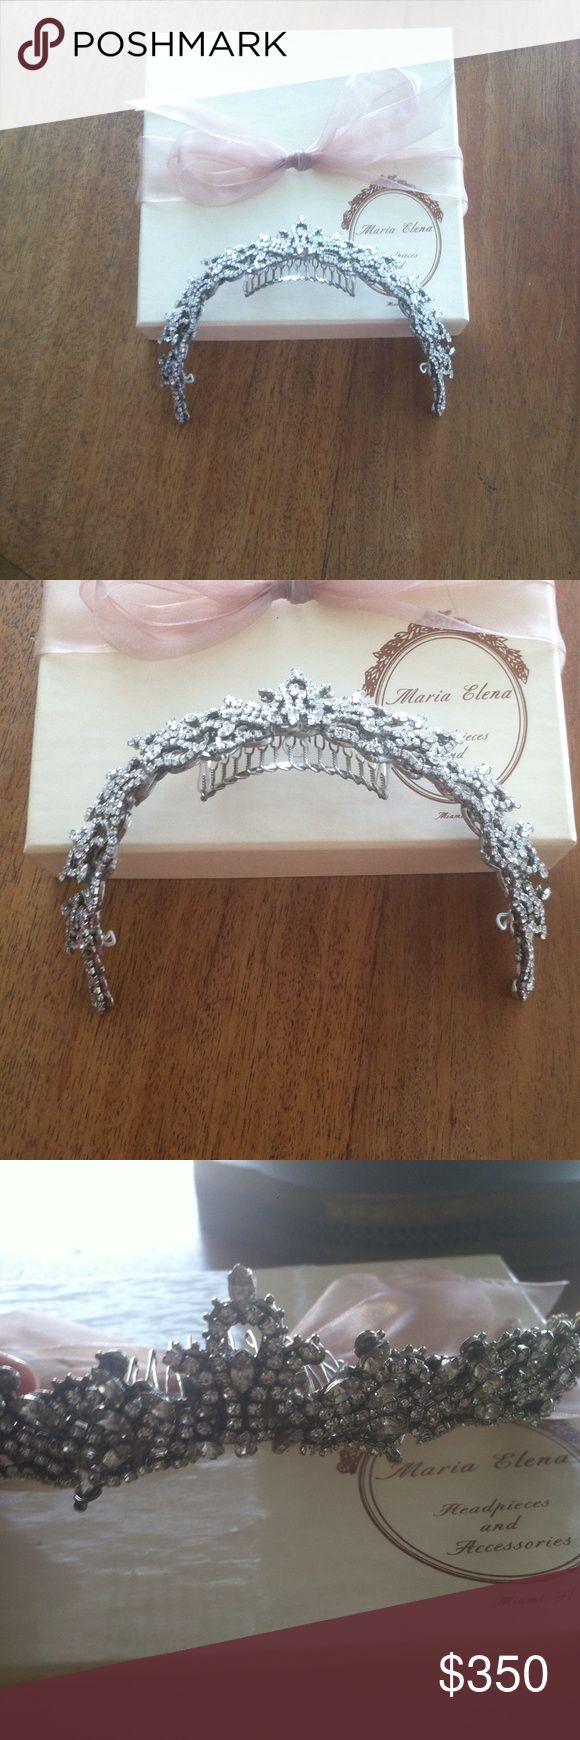 Maria Elena Bridal Tiara Brand new, never worn bridal tiara by Maria Elena. Gorgeous piece for your special occasion. I originally purchased it from Pebbles Bridal shop in Woodland Hills. It's got an antique, vintage look to it, absolutely stunning. Crystals are Swarovski. maria elena Accessories Hair Accessories